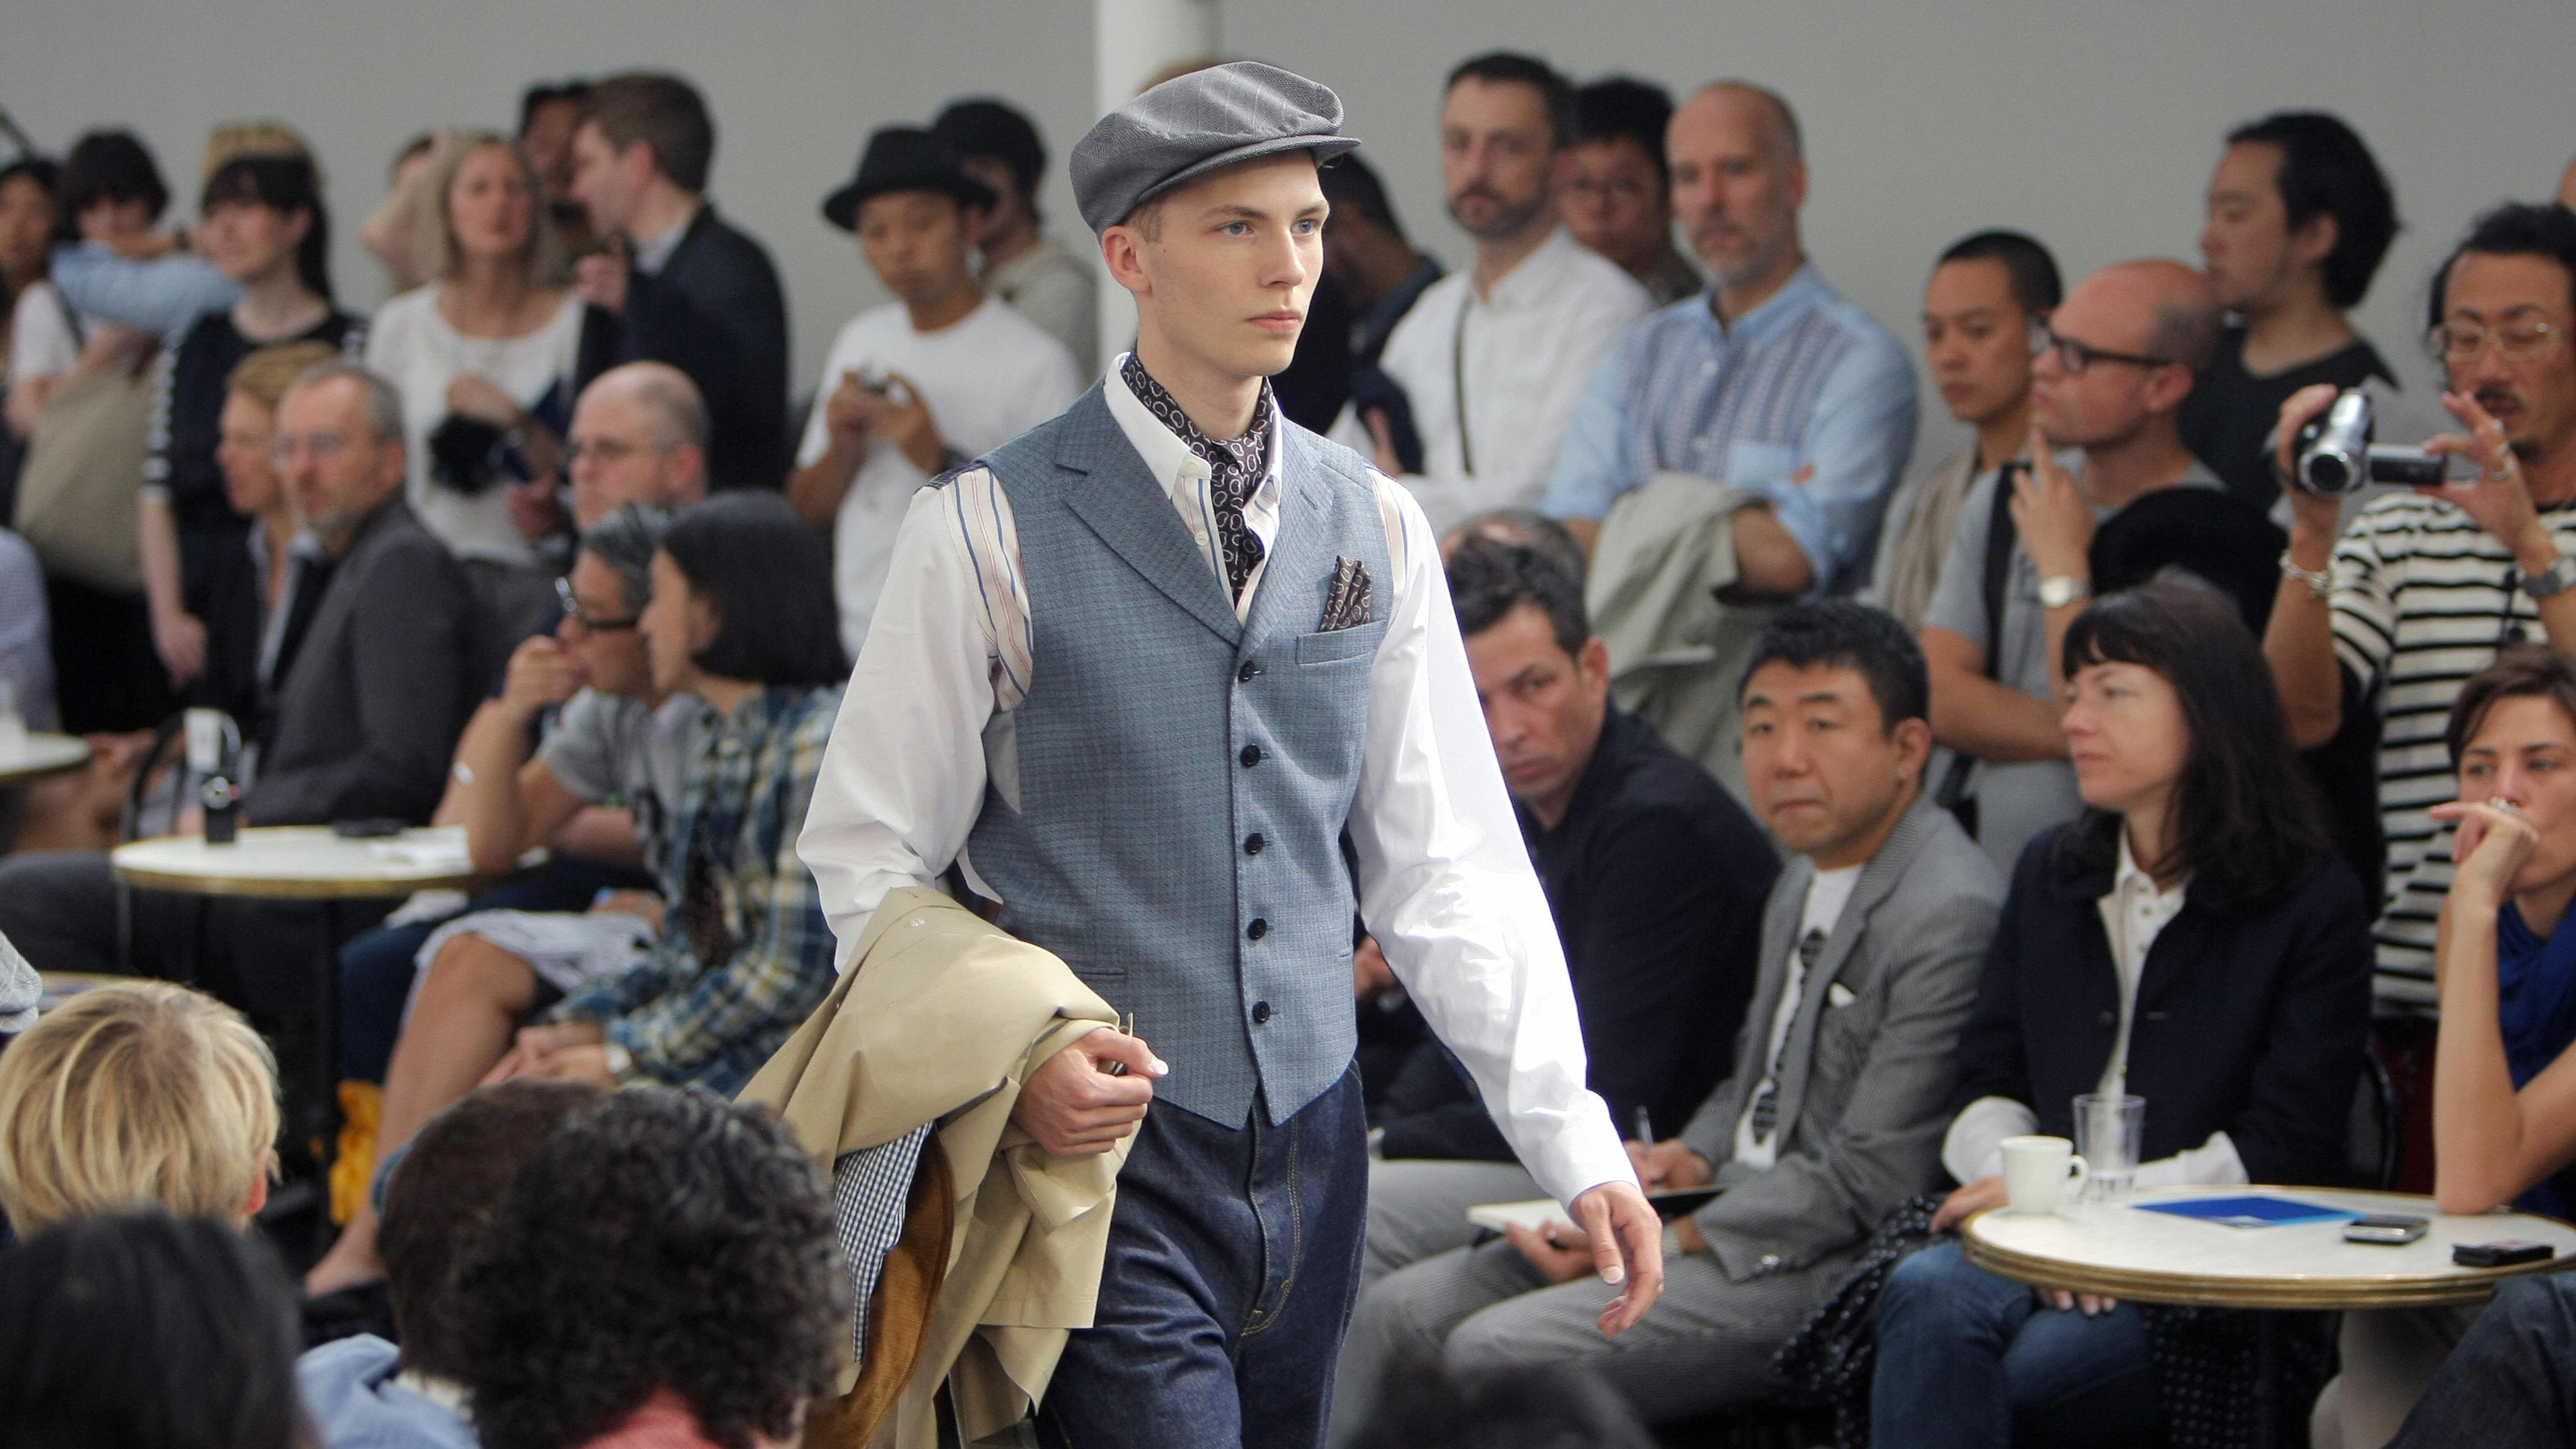 A model presents creations for Junya Watanabe Man / Comme des Garçons as part of the men's 2009-2010 spring-summer ready to wear collection presentations on June 26, 2009 in Paris.